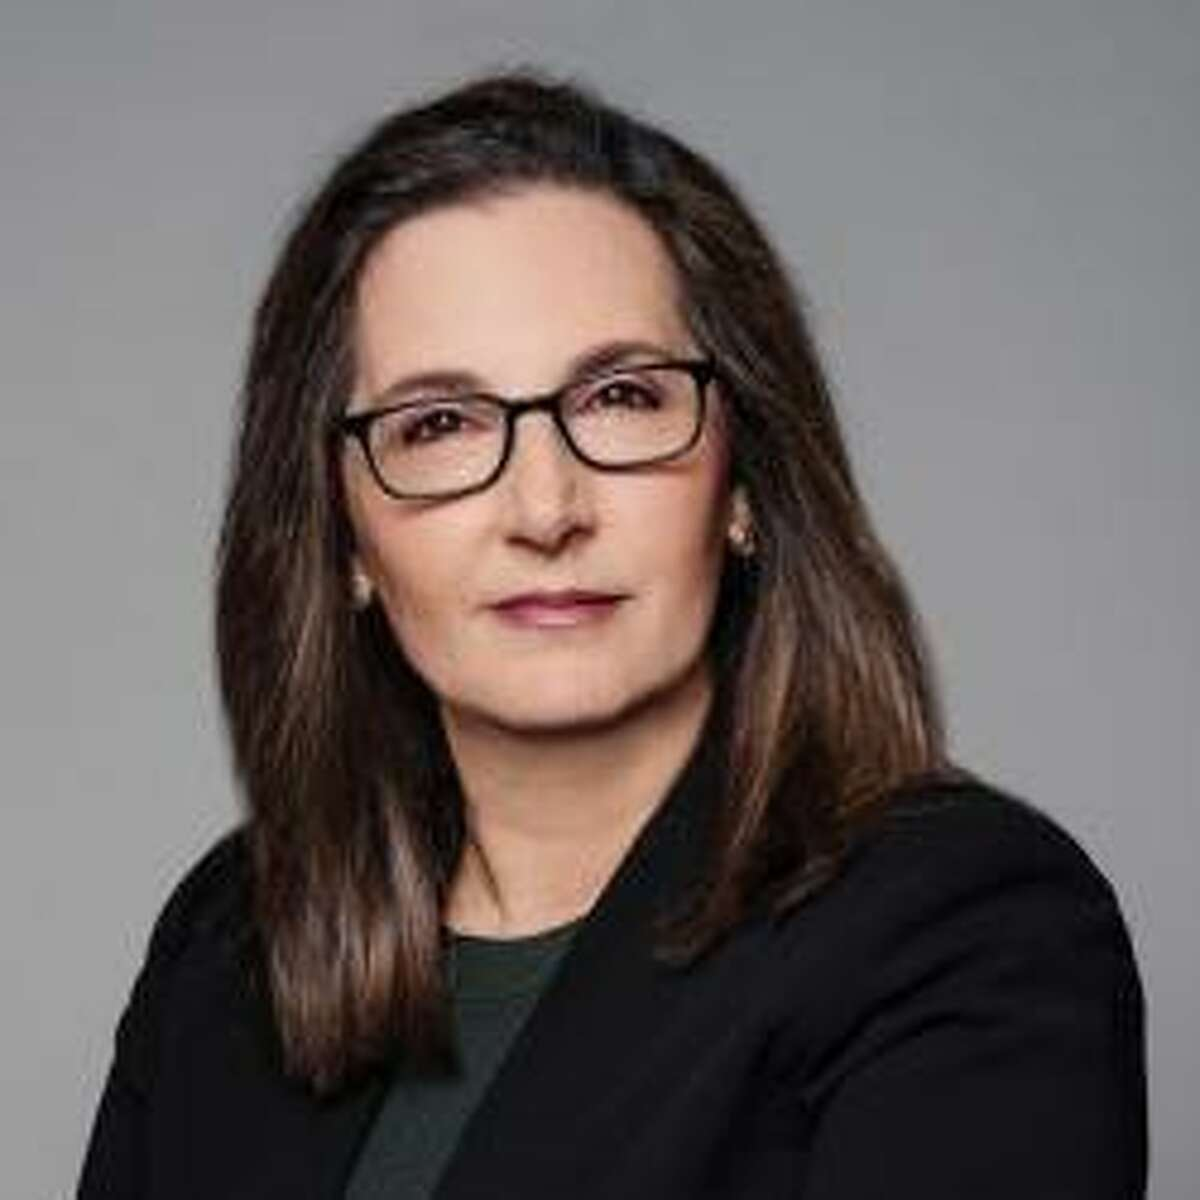 Joyce Vance, one of the first five U.S. Attorneys - and the first female U.S. Attorney - nominated by President Barack Obama